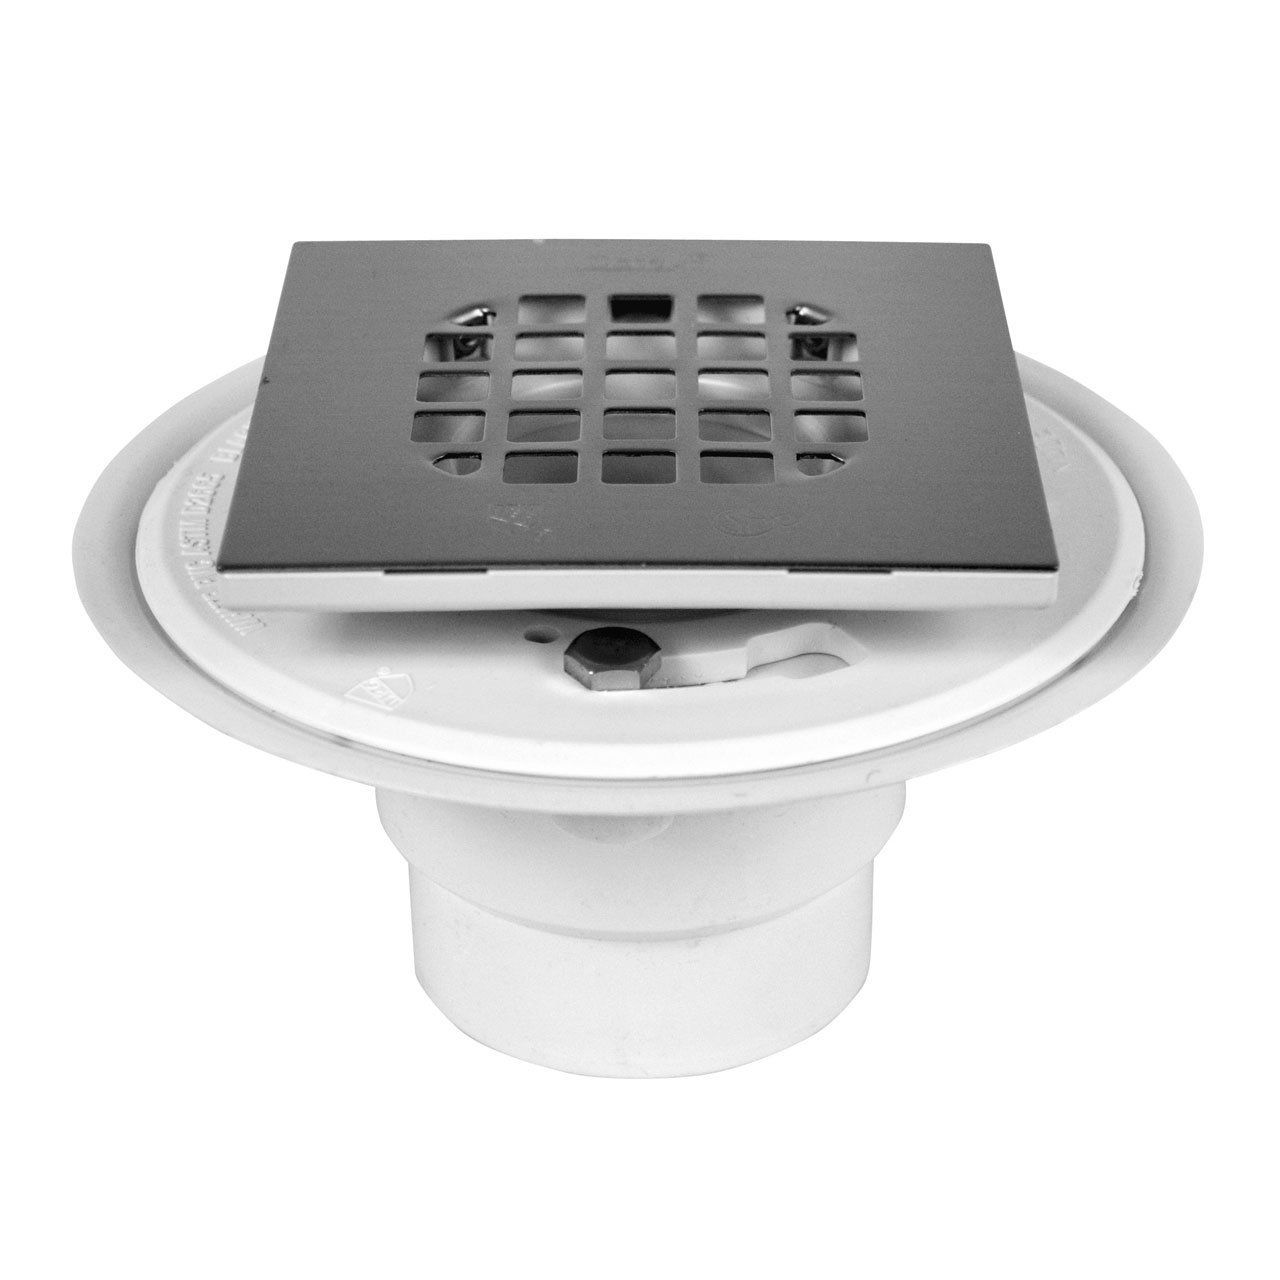 Amazon Com Oatey 42398 Pvc Shower Drain With Square Rubbed Bronze